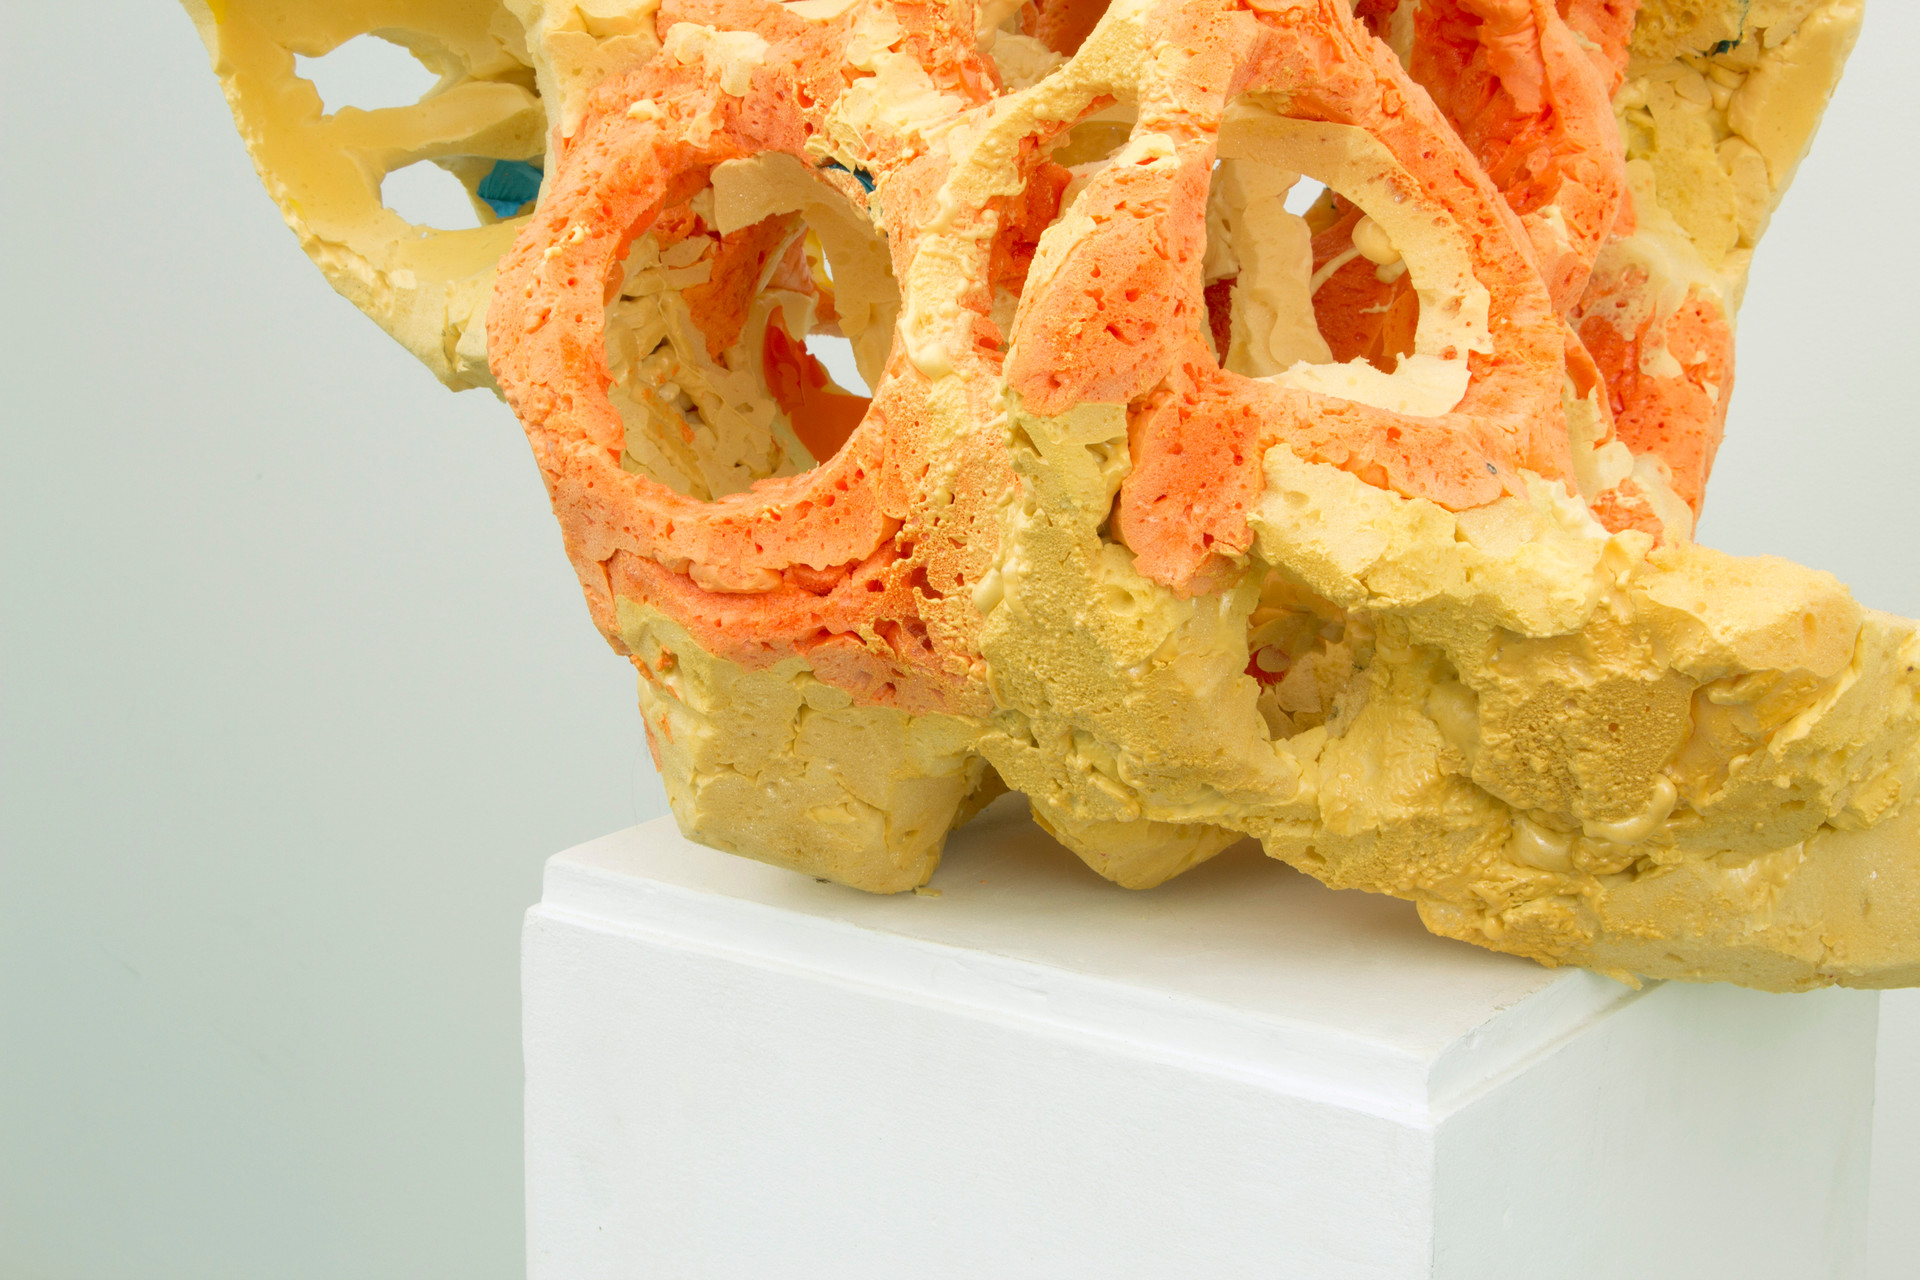 FRNKS Other Lung (detail), studio debirs (Insulations foam, latex, plinth), dimensions vary, 2008-2014 (ongoing).